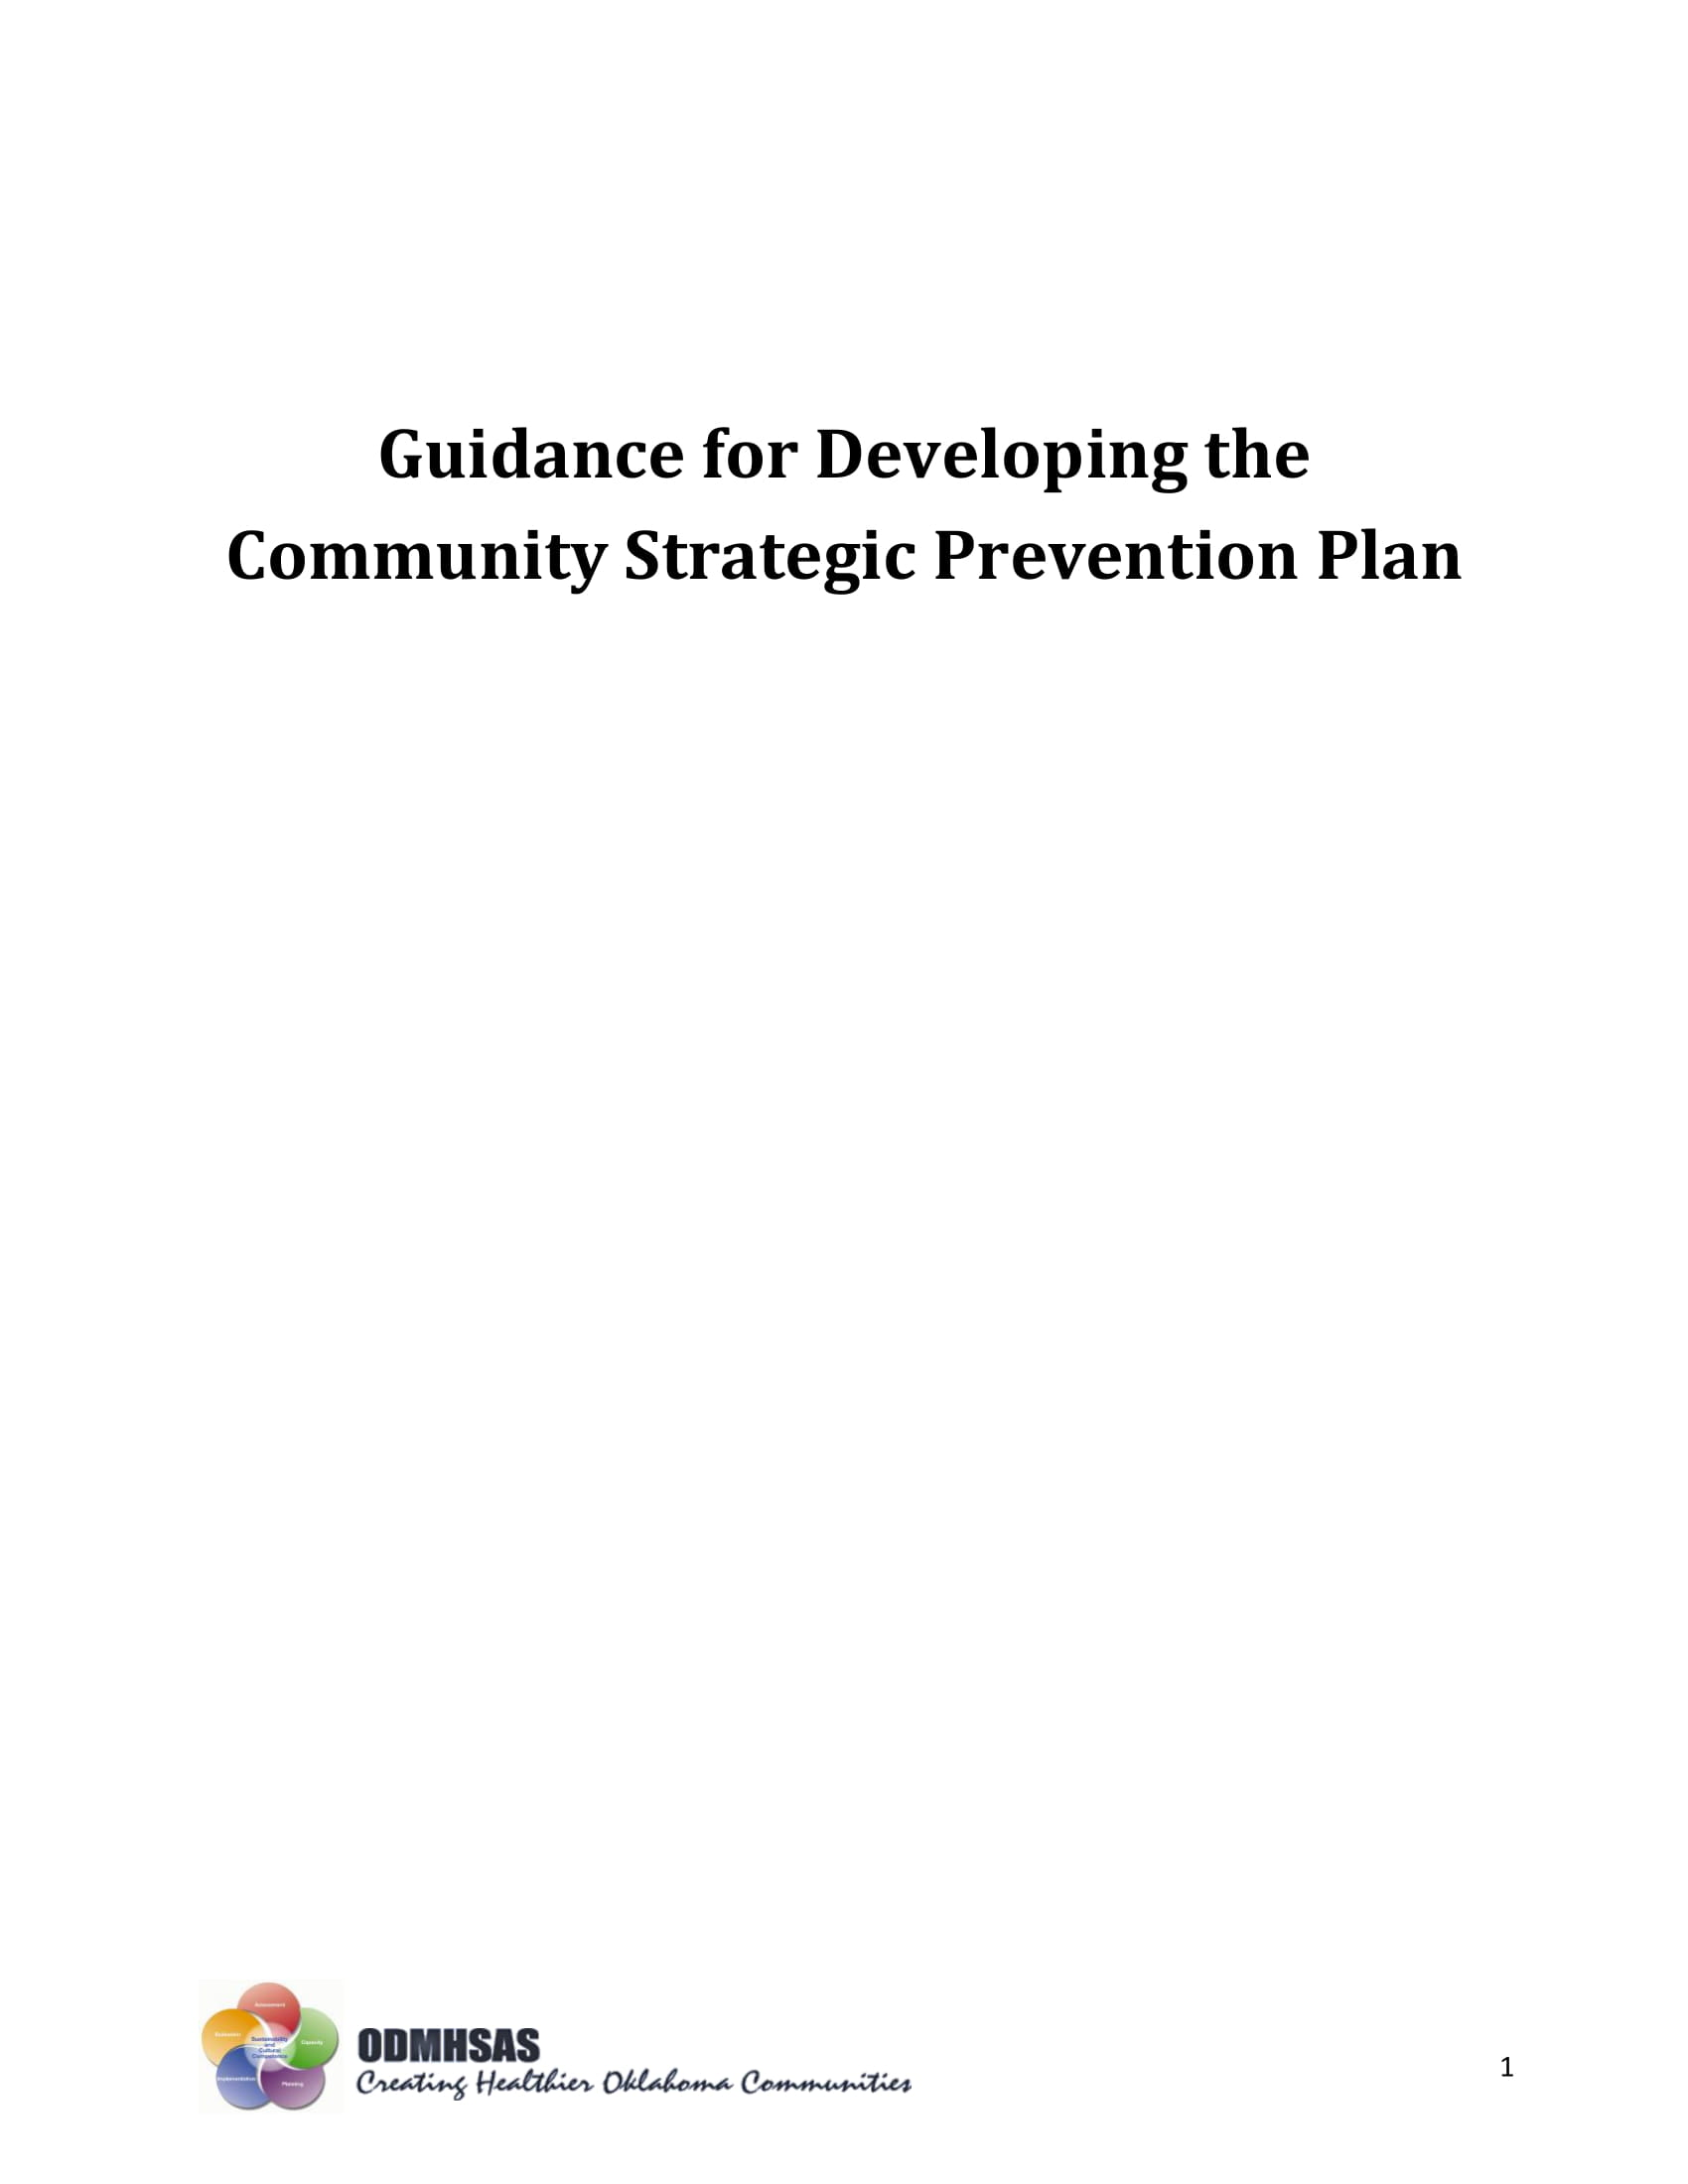 community strategic prevention plan guidelines and example 01